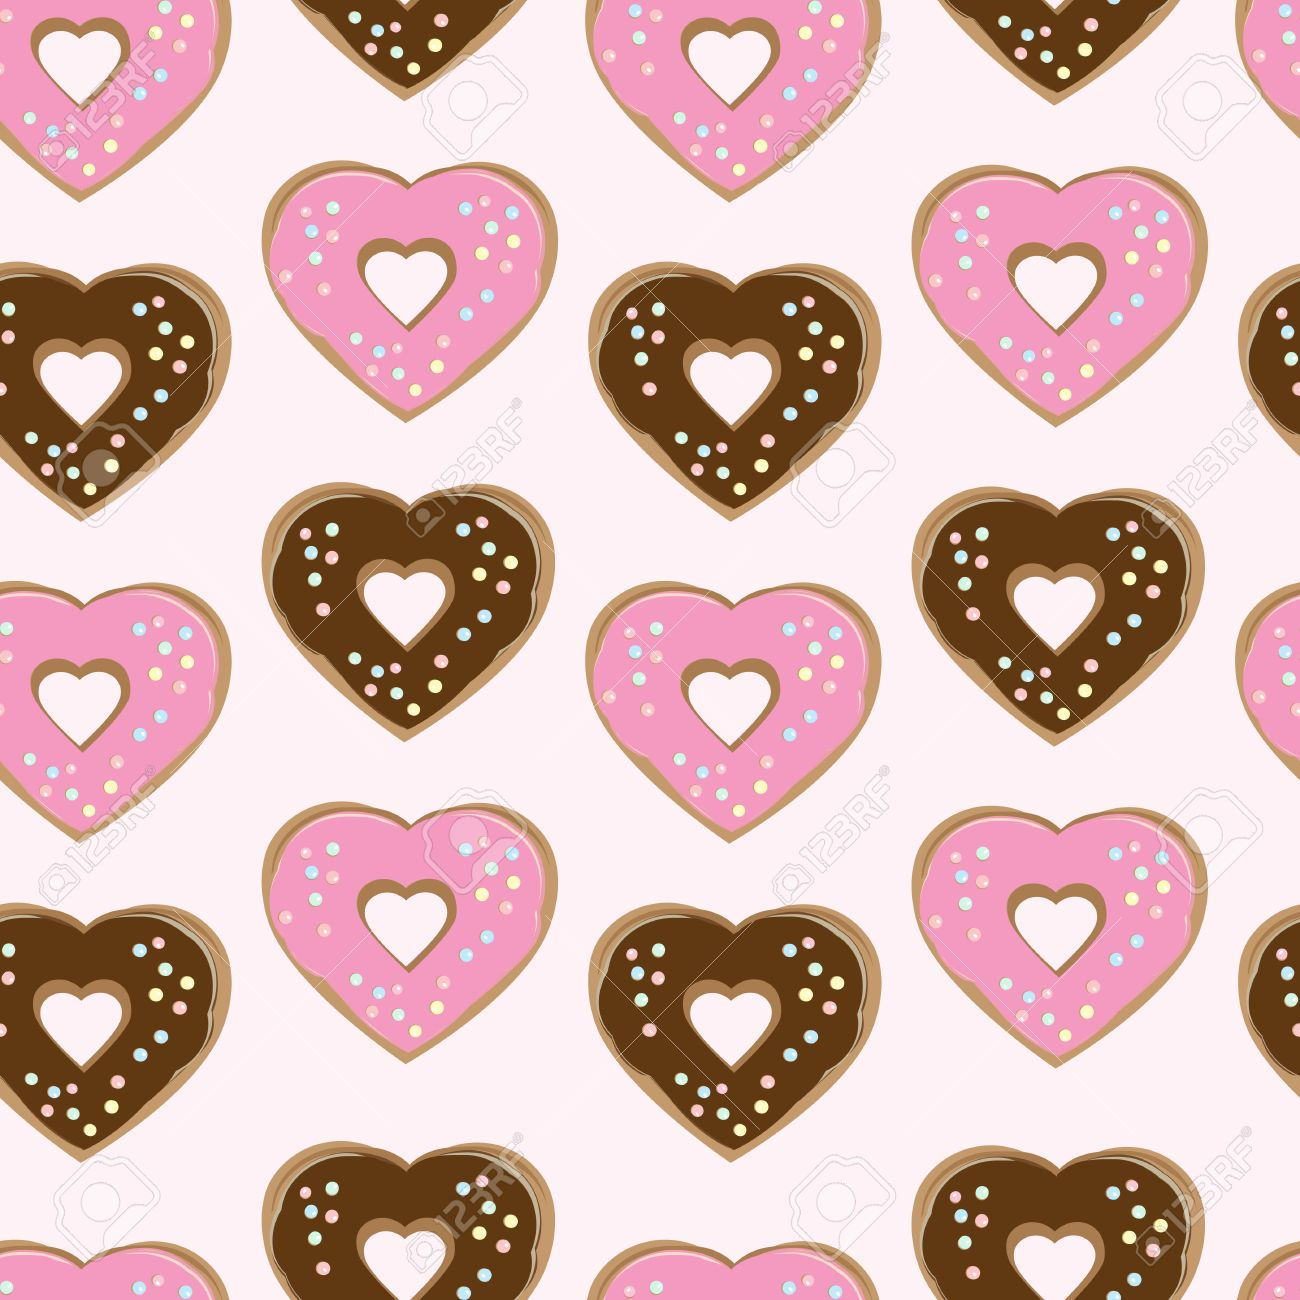 Assorted Heart Shaped Doughnuts Glazed With Chocolate And Pink.